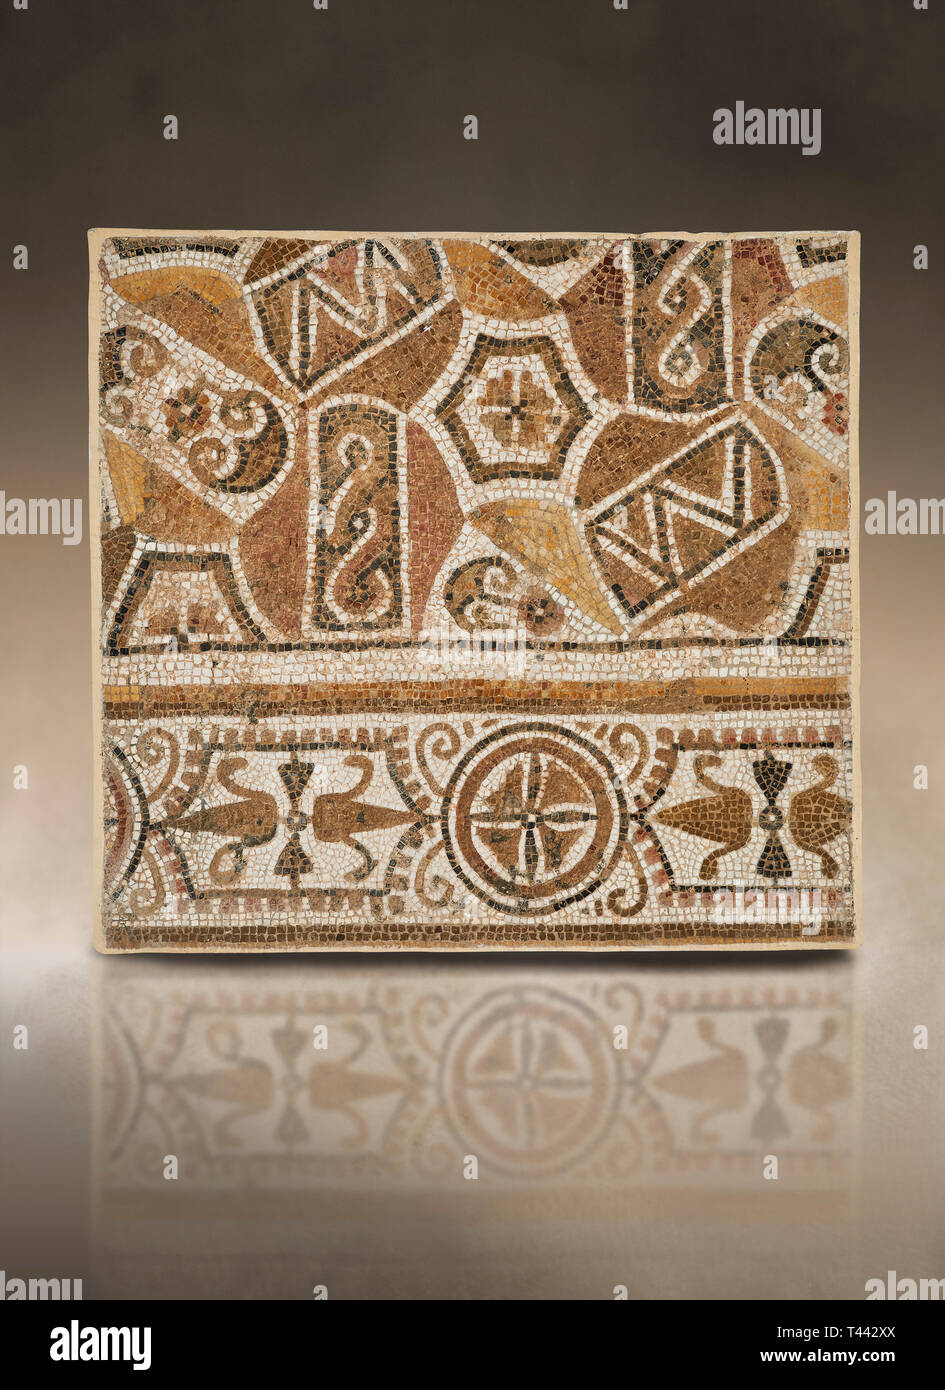 Pictures of a geometric Roman mosaic, from the ancient Roman city of Thysdrus. 3rd century AD. El Djem Archaeological Museum, El Djem, Tunisia. - Stock Image